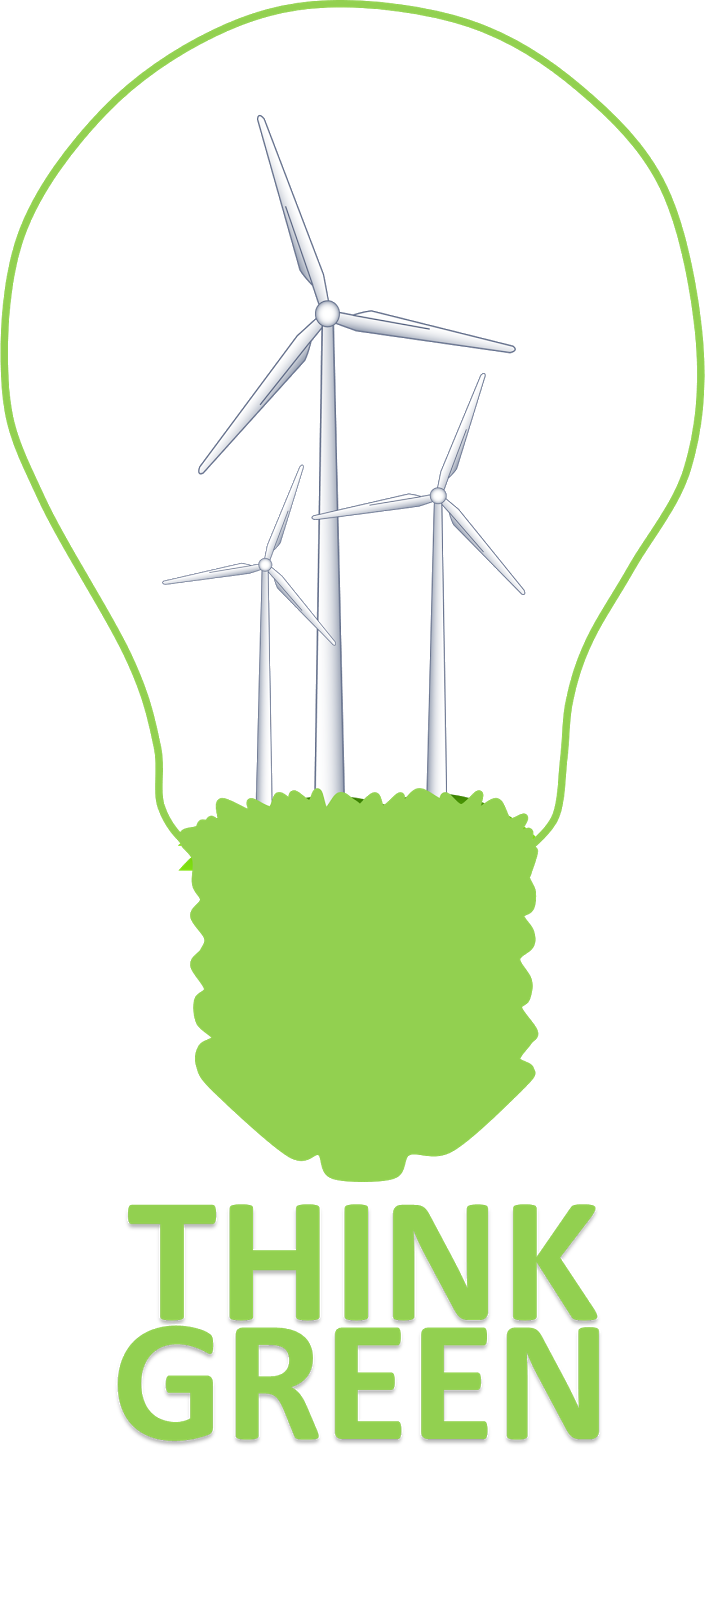 Clipart Creationz: Think Green Poster.